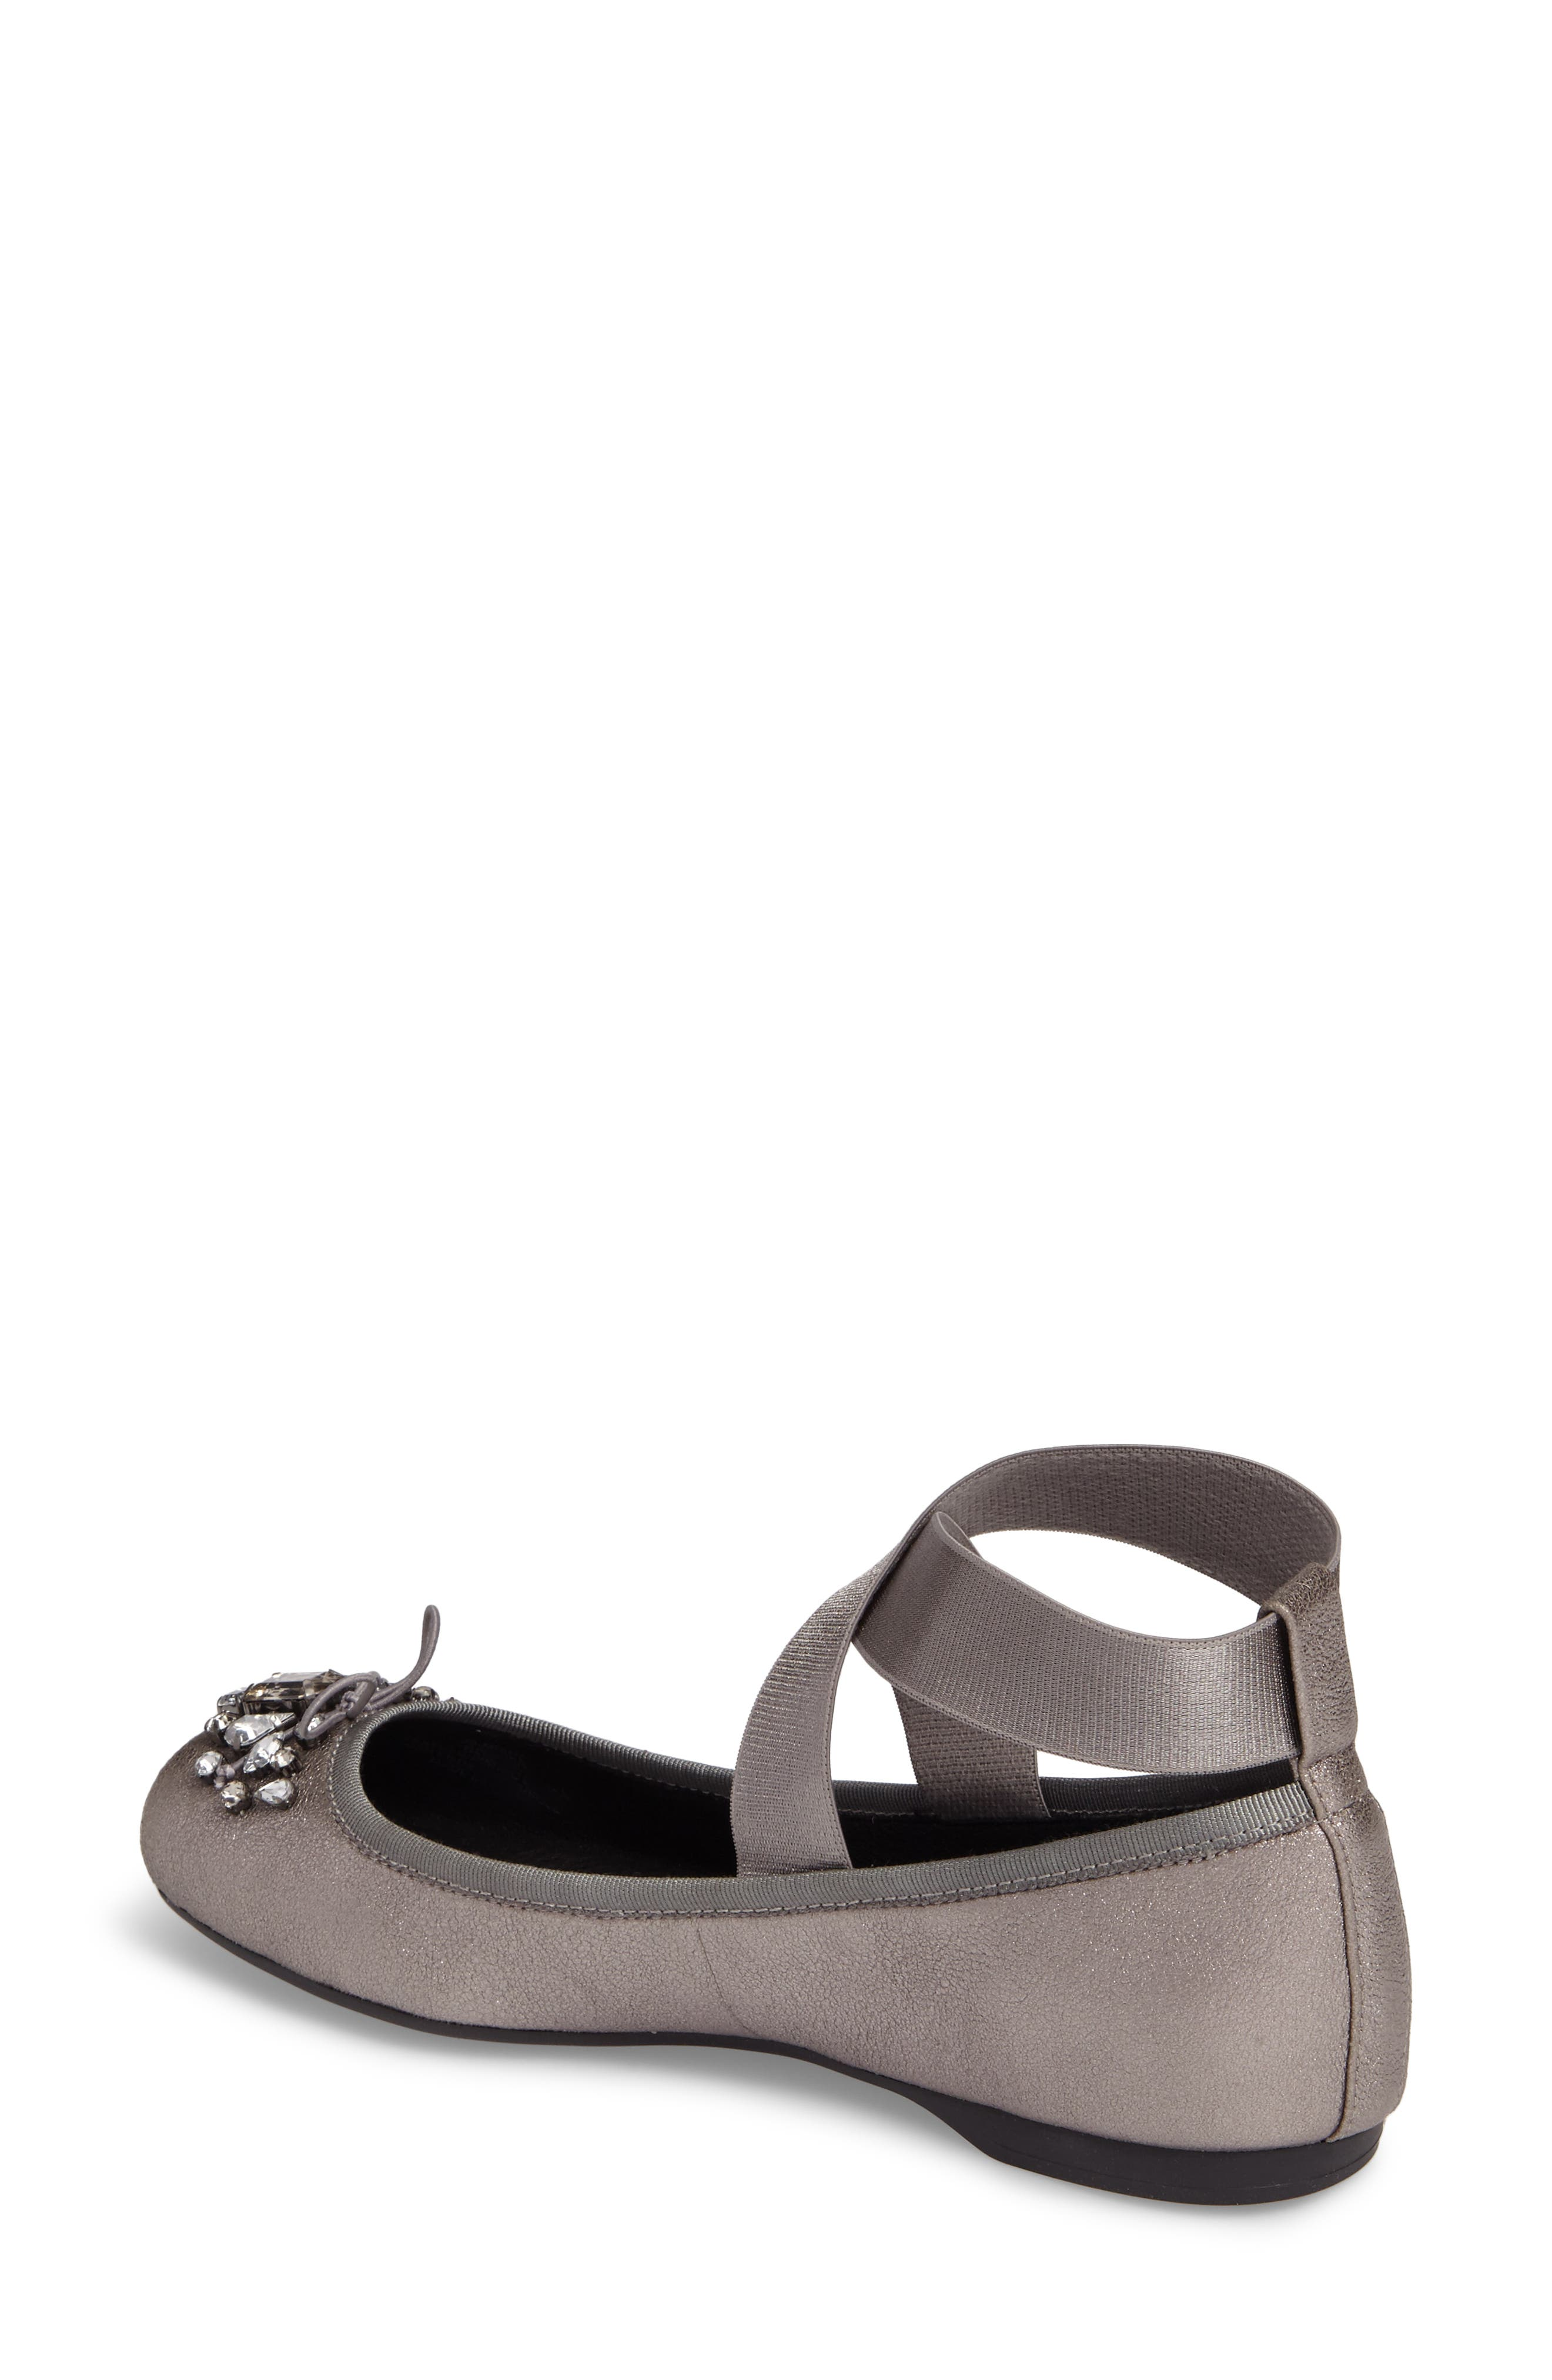 Miaha Embellished Blunt Toe Flat,                             Alternate thumbnail 2, color,                             Alloy Leather